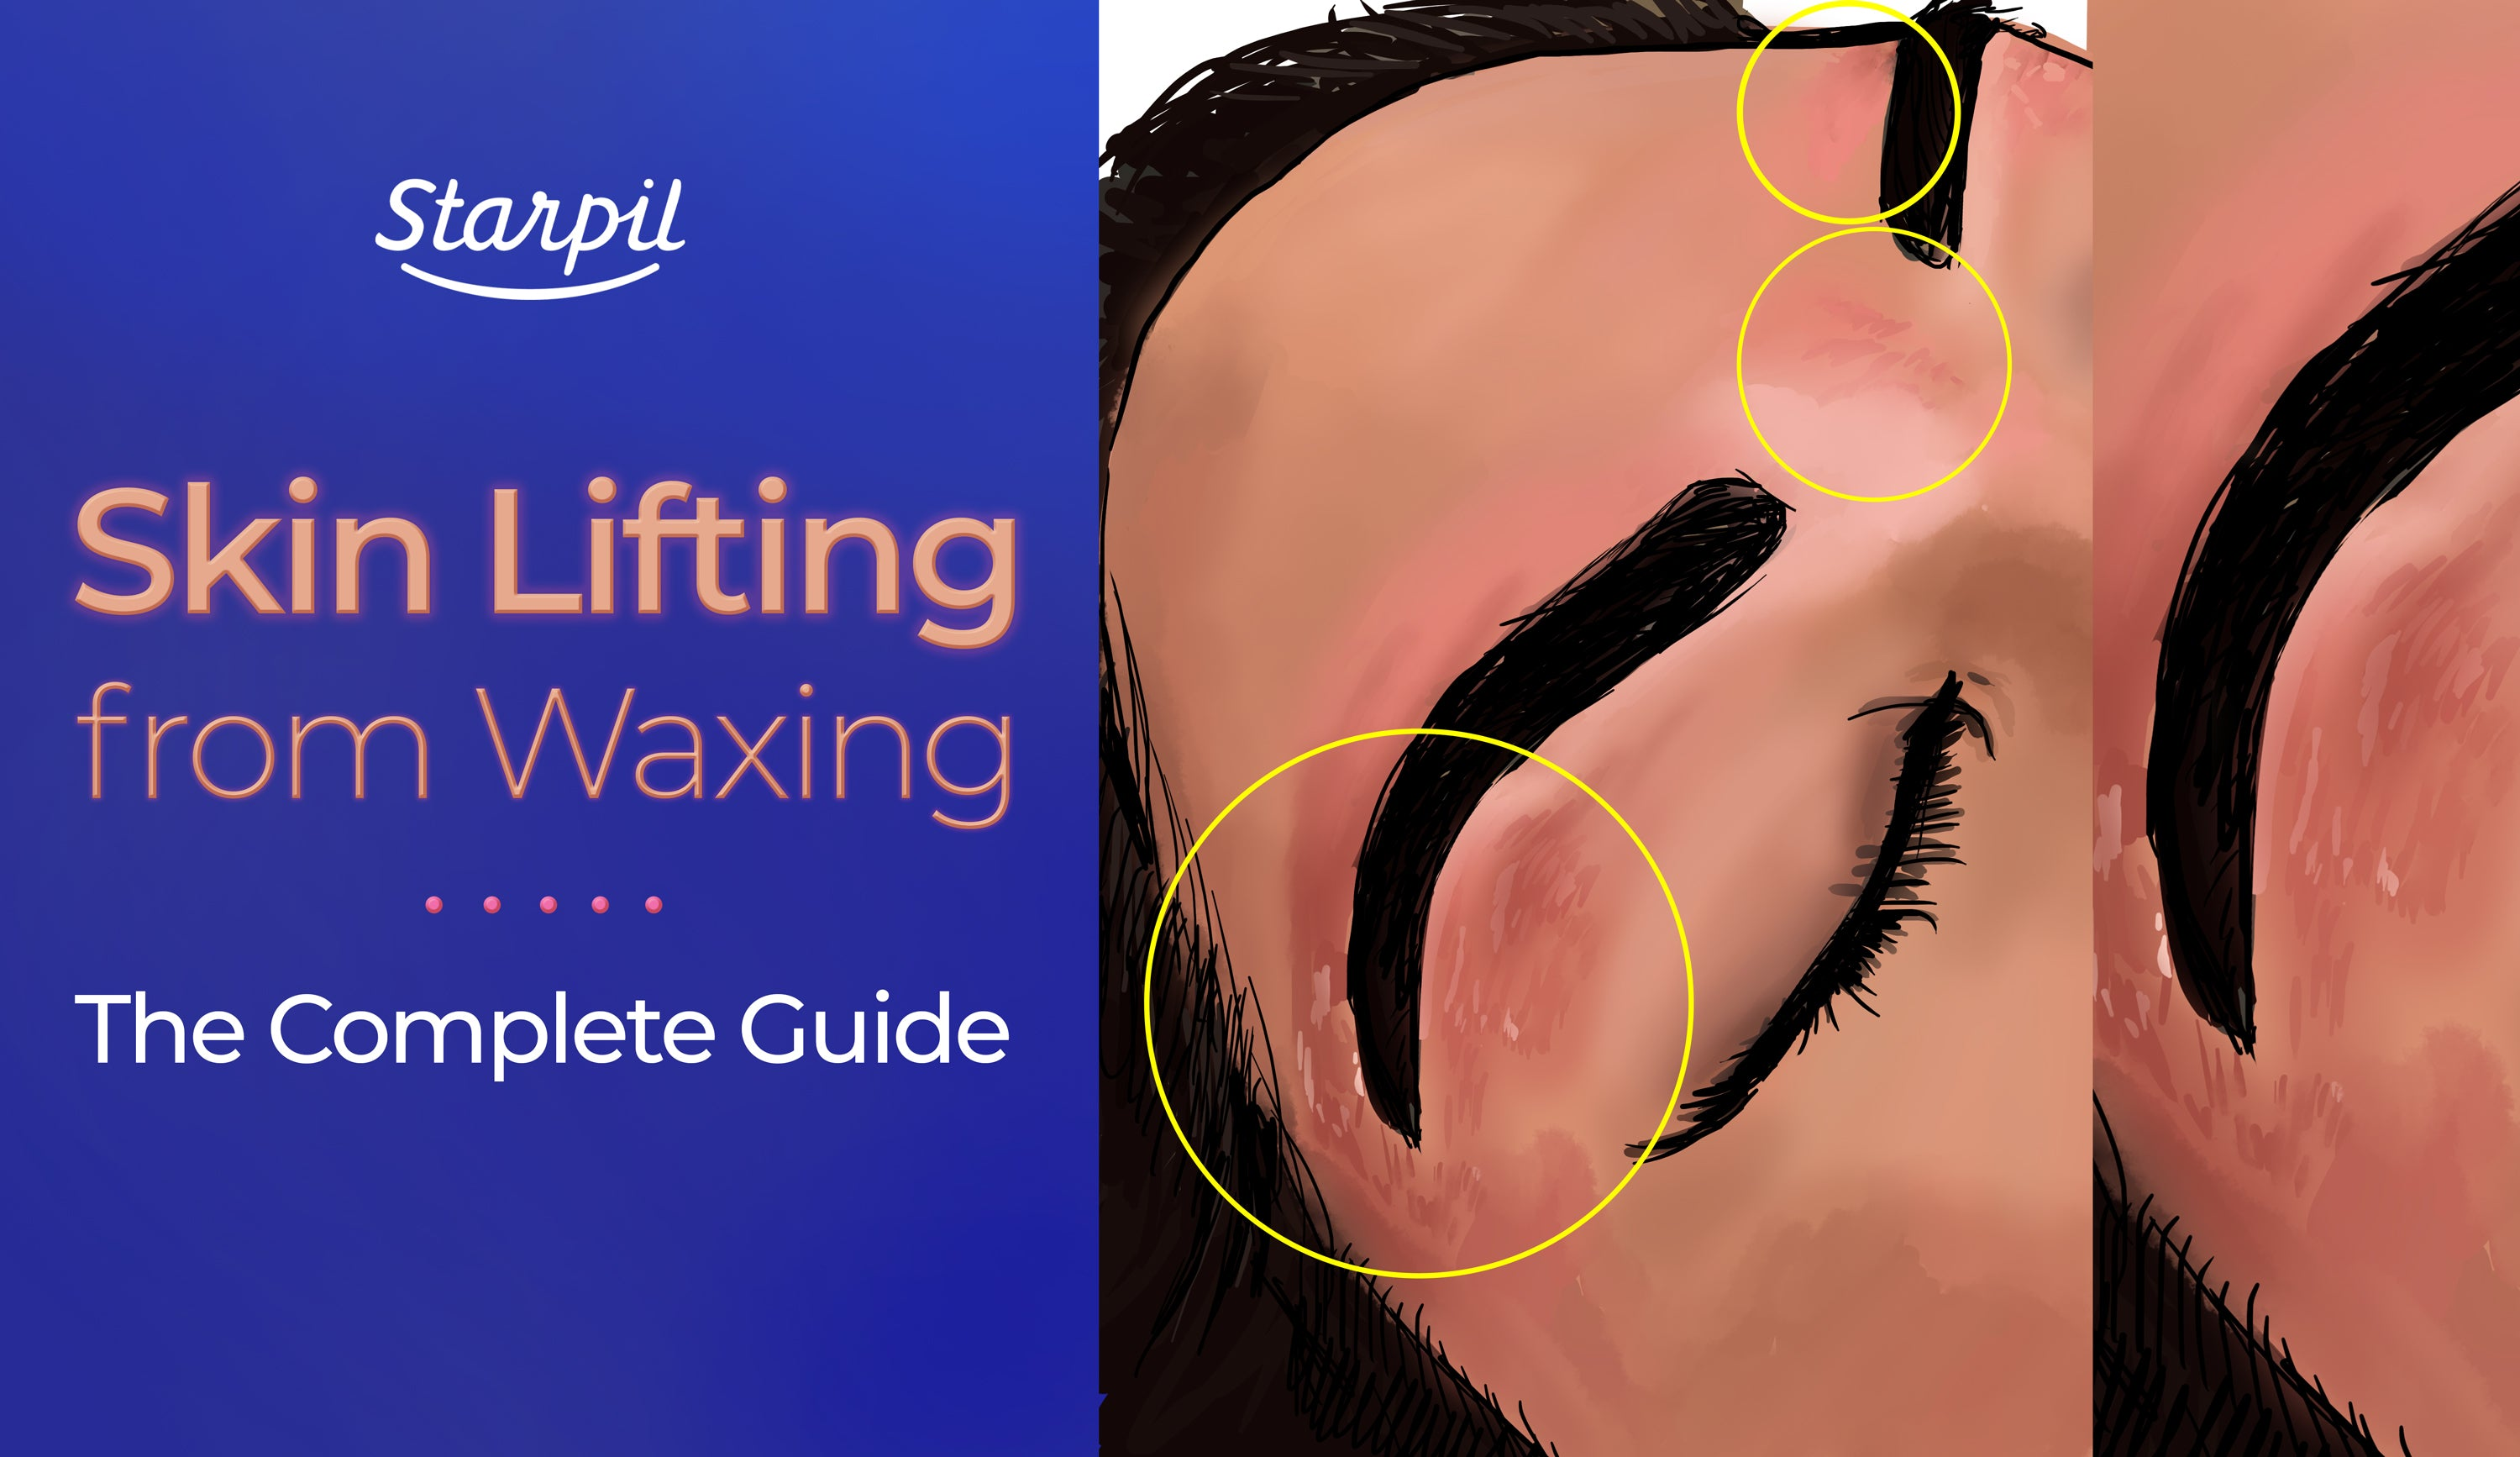 Skin Lifting from Waxing - Starpil Wax